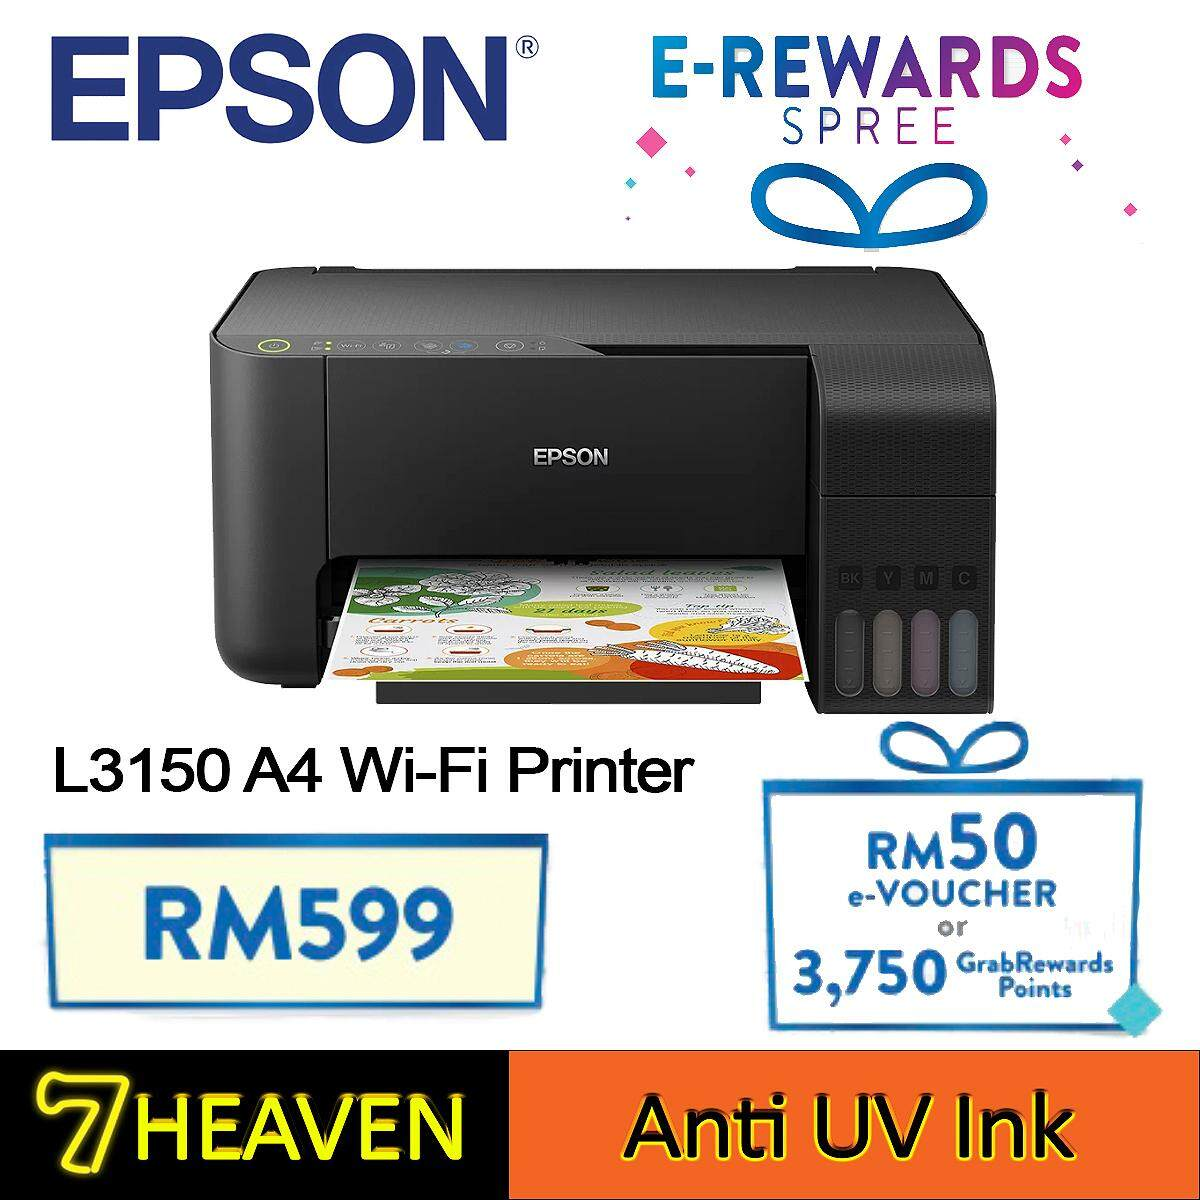 Epson EcoTank L3150 Wi-Fi All-in-One Ink Tank Printer with Anti UV Ink  Similar to L405 G3010 T510w